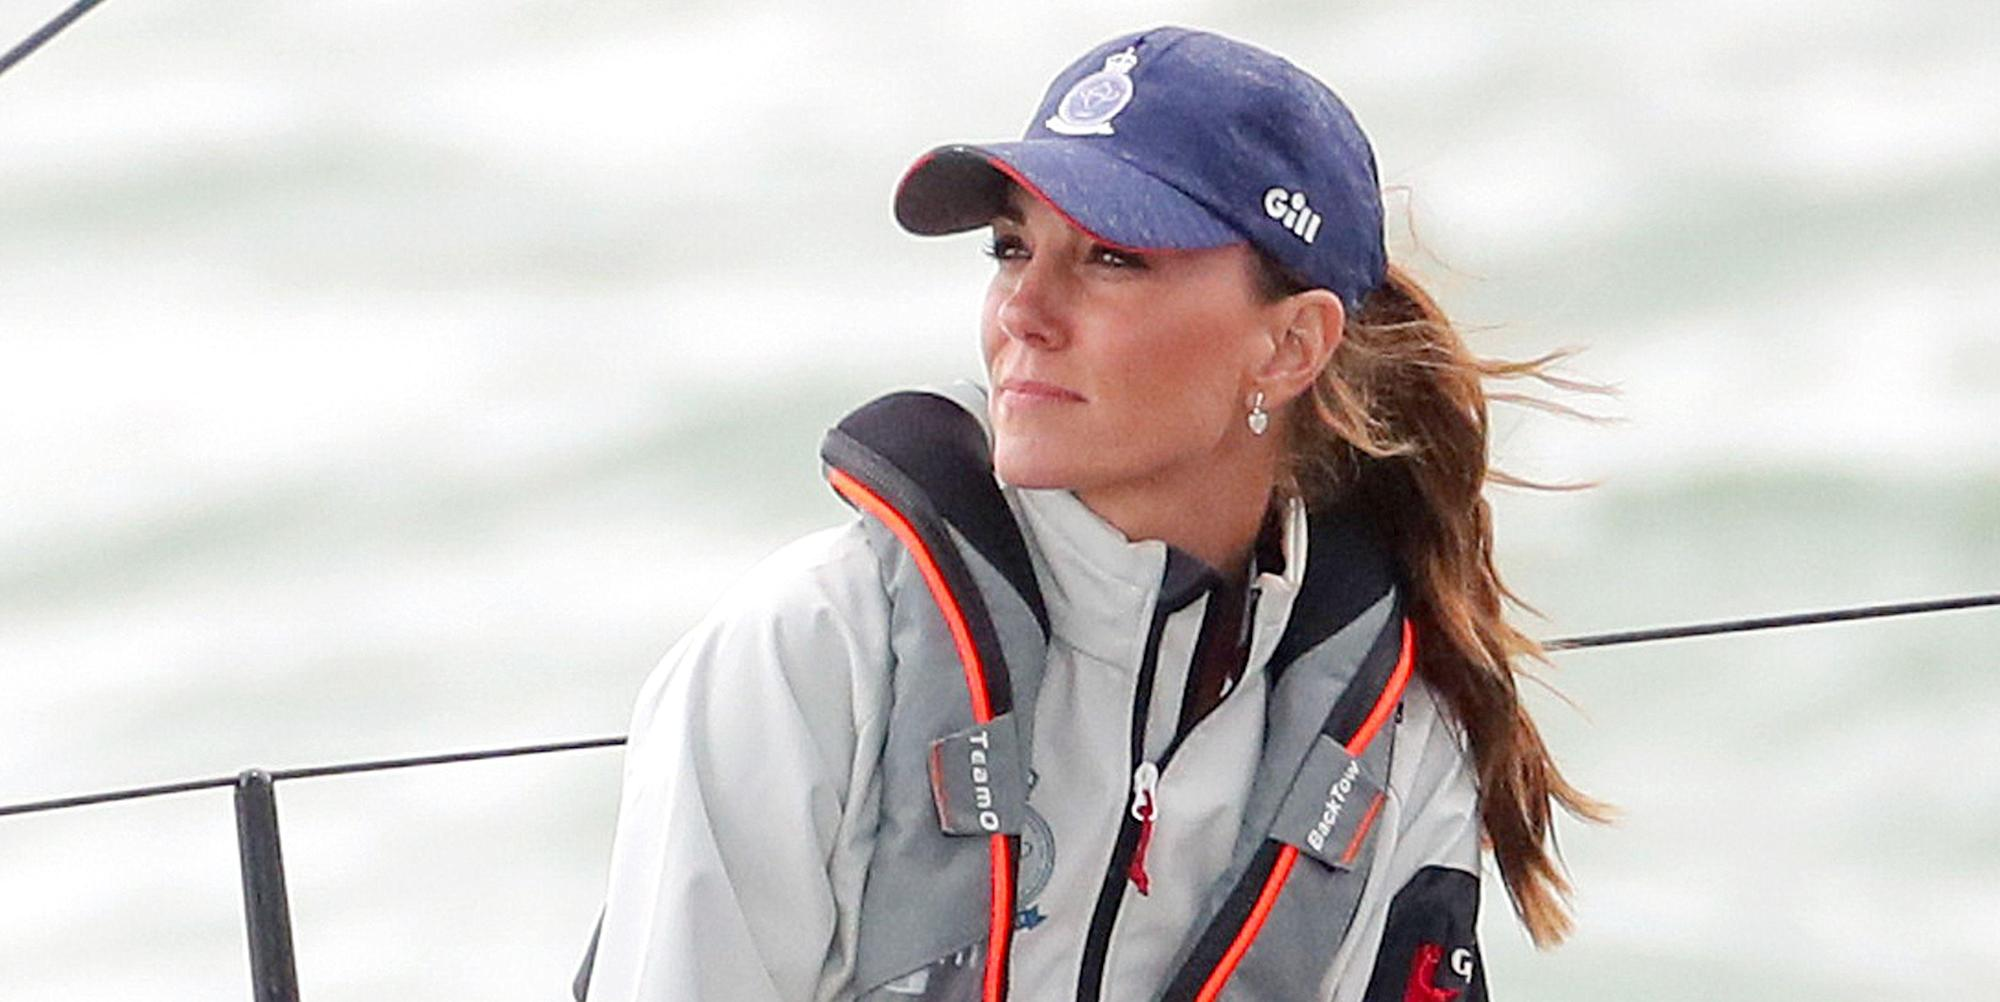 Kate Middleton and Prince William Secretly Took Their Kids on Vacation to the Isles of Scilly